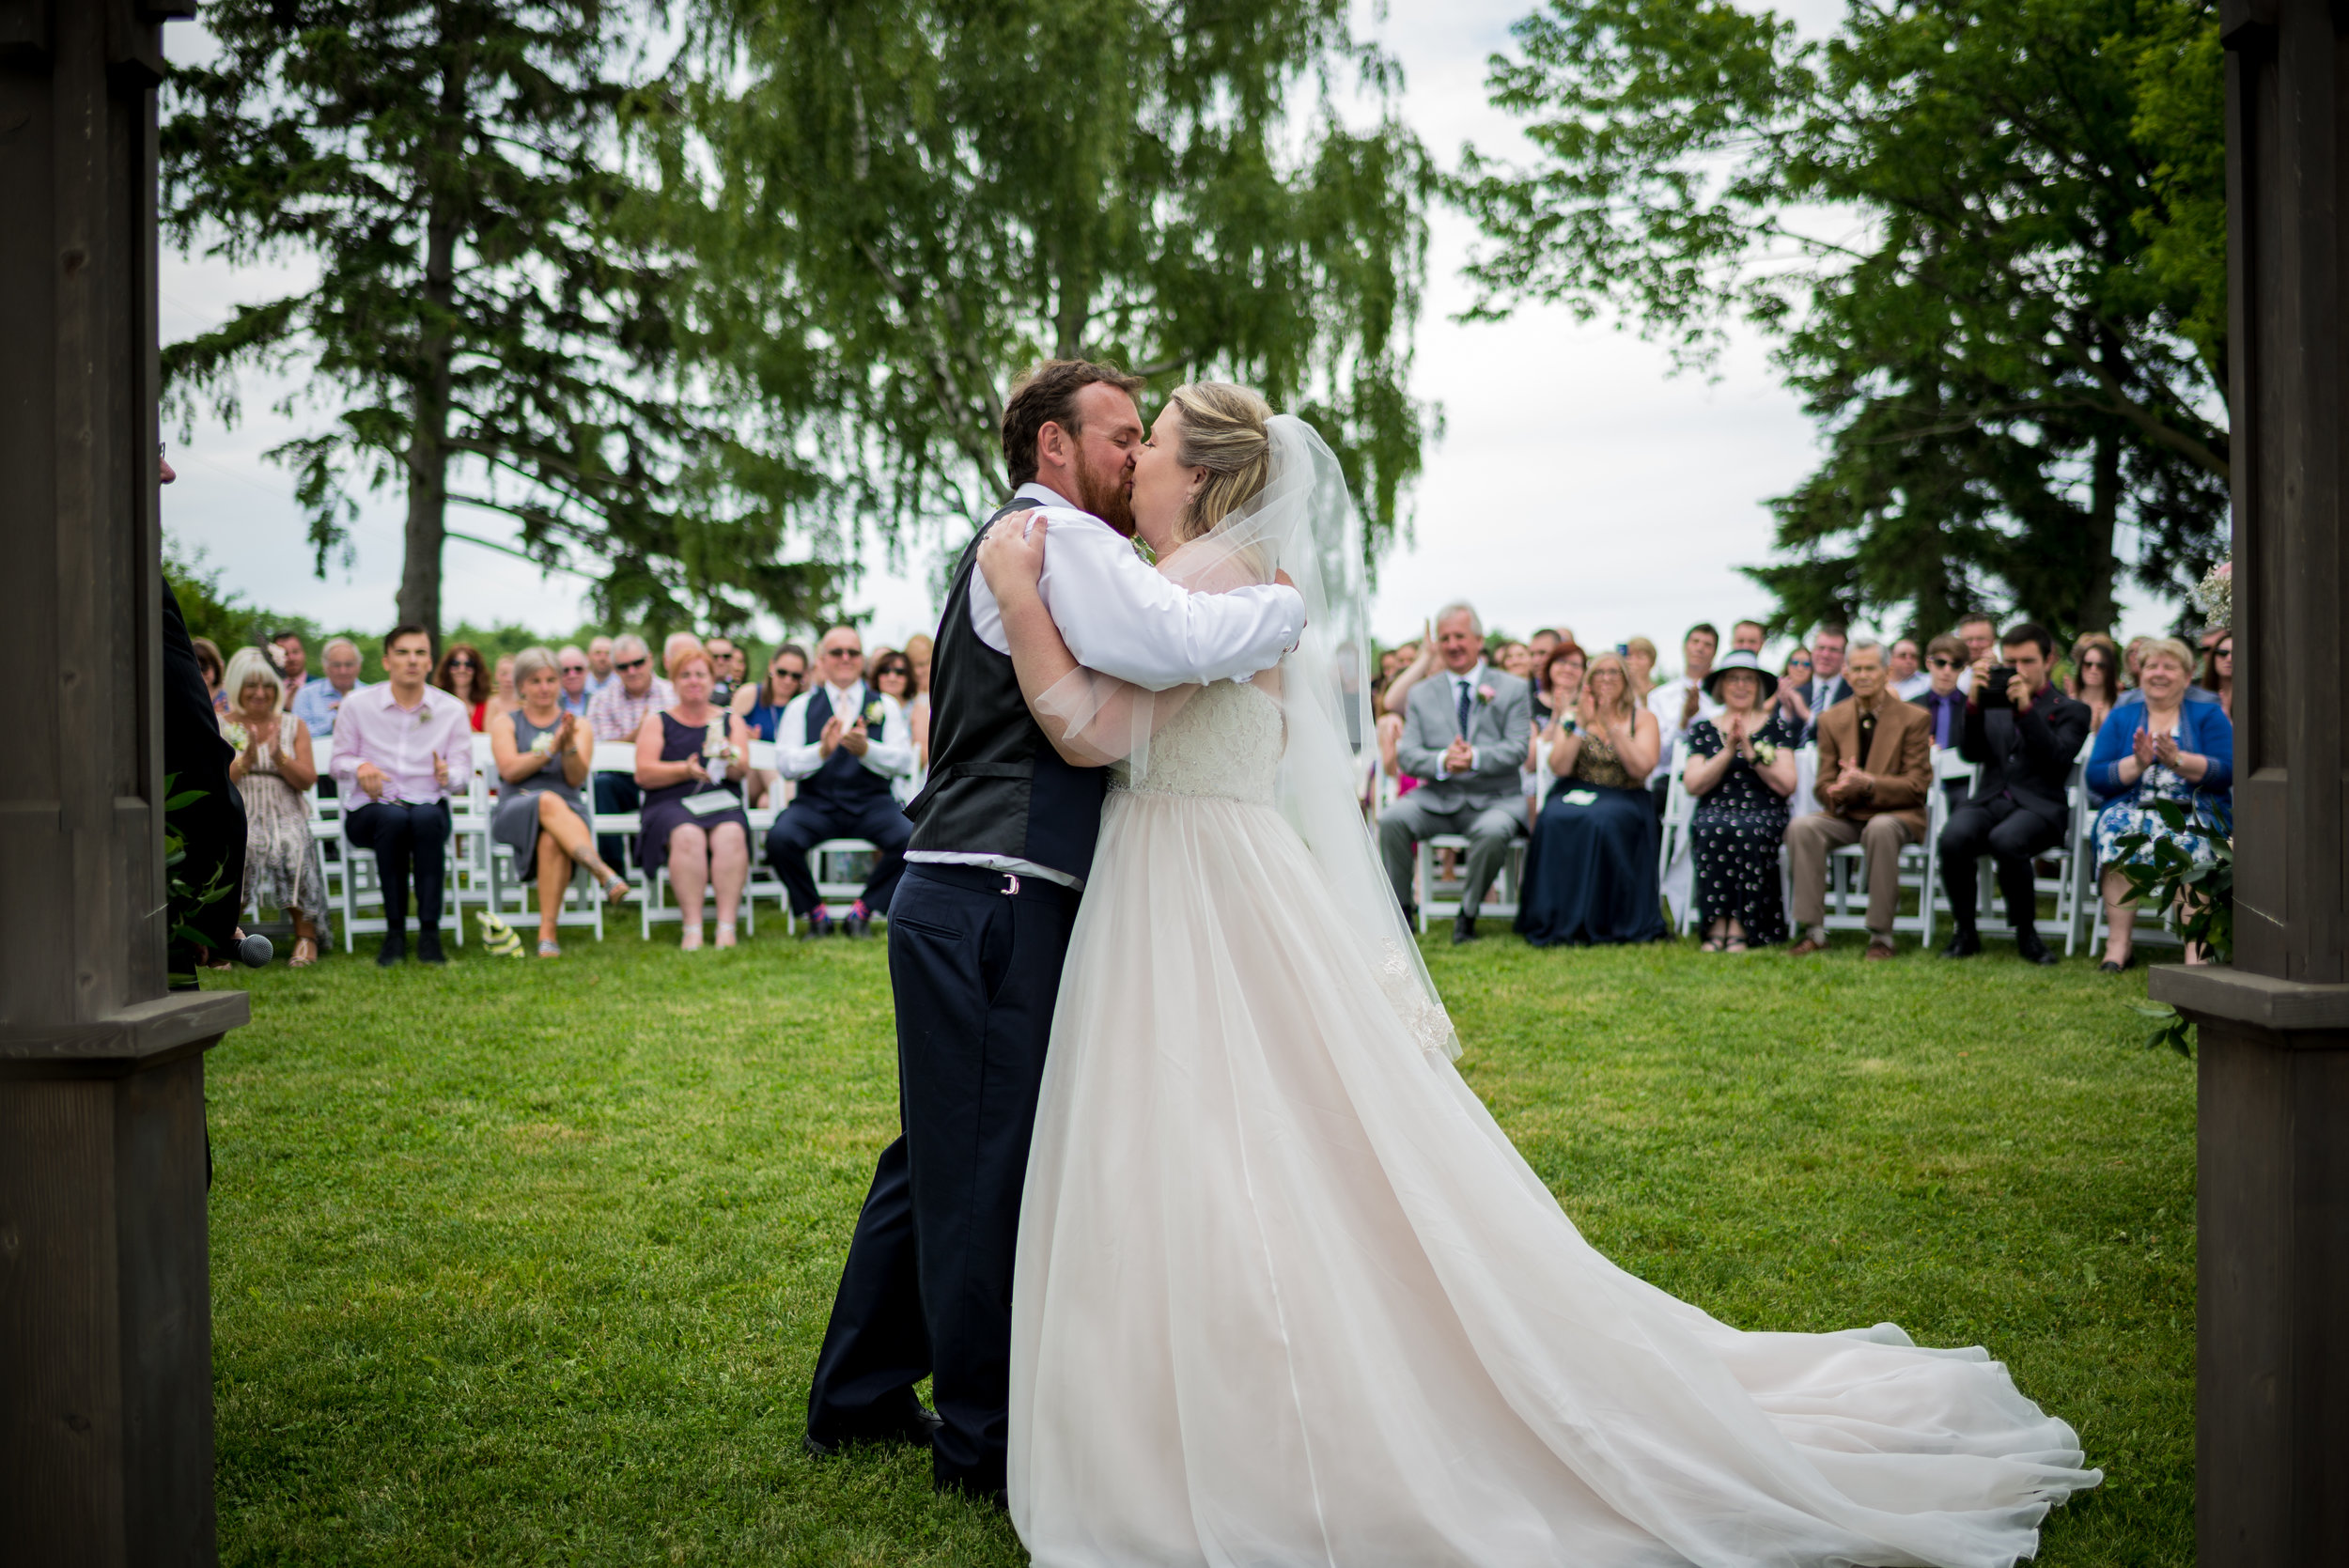 Kristin & Matt's First Kiss as Husband and Wife at Earth to Table: The Farm